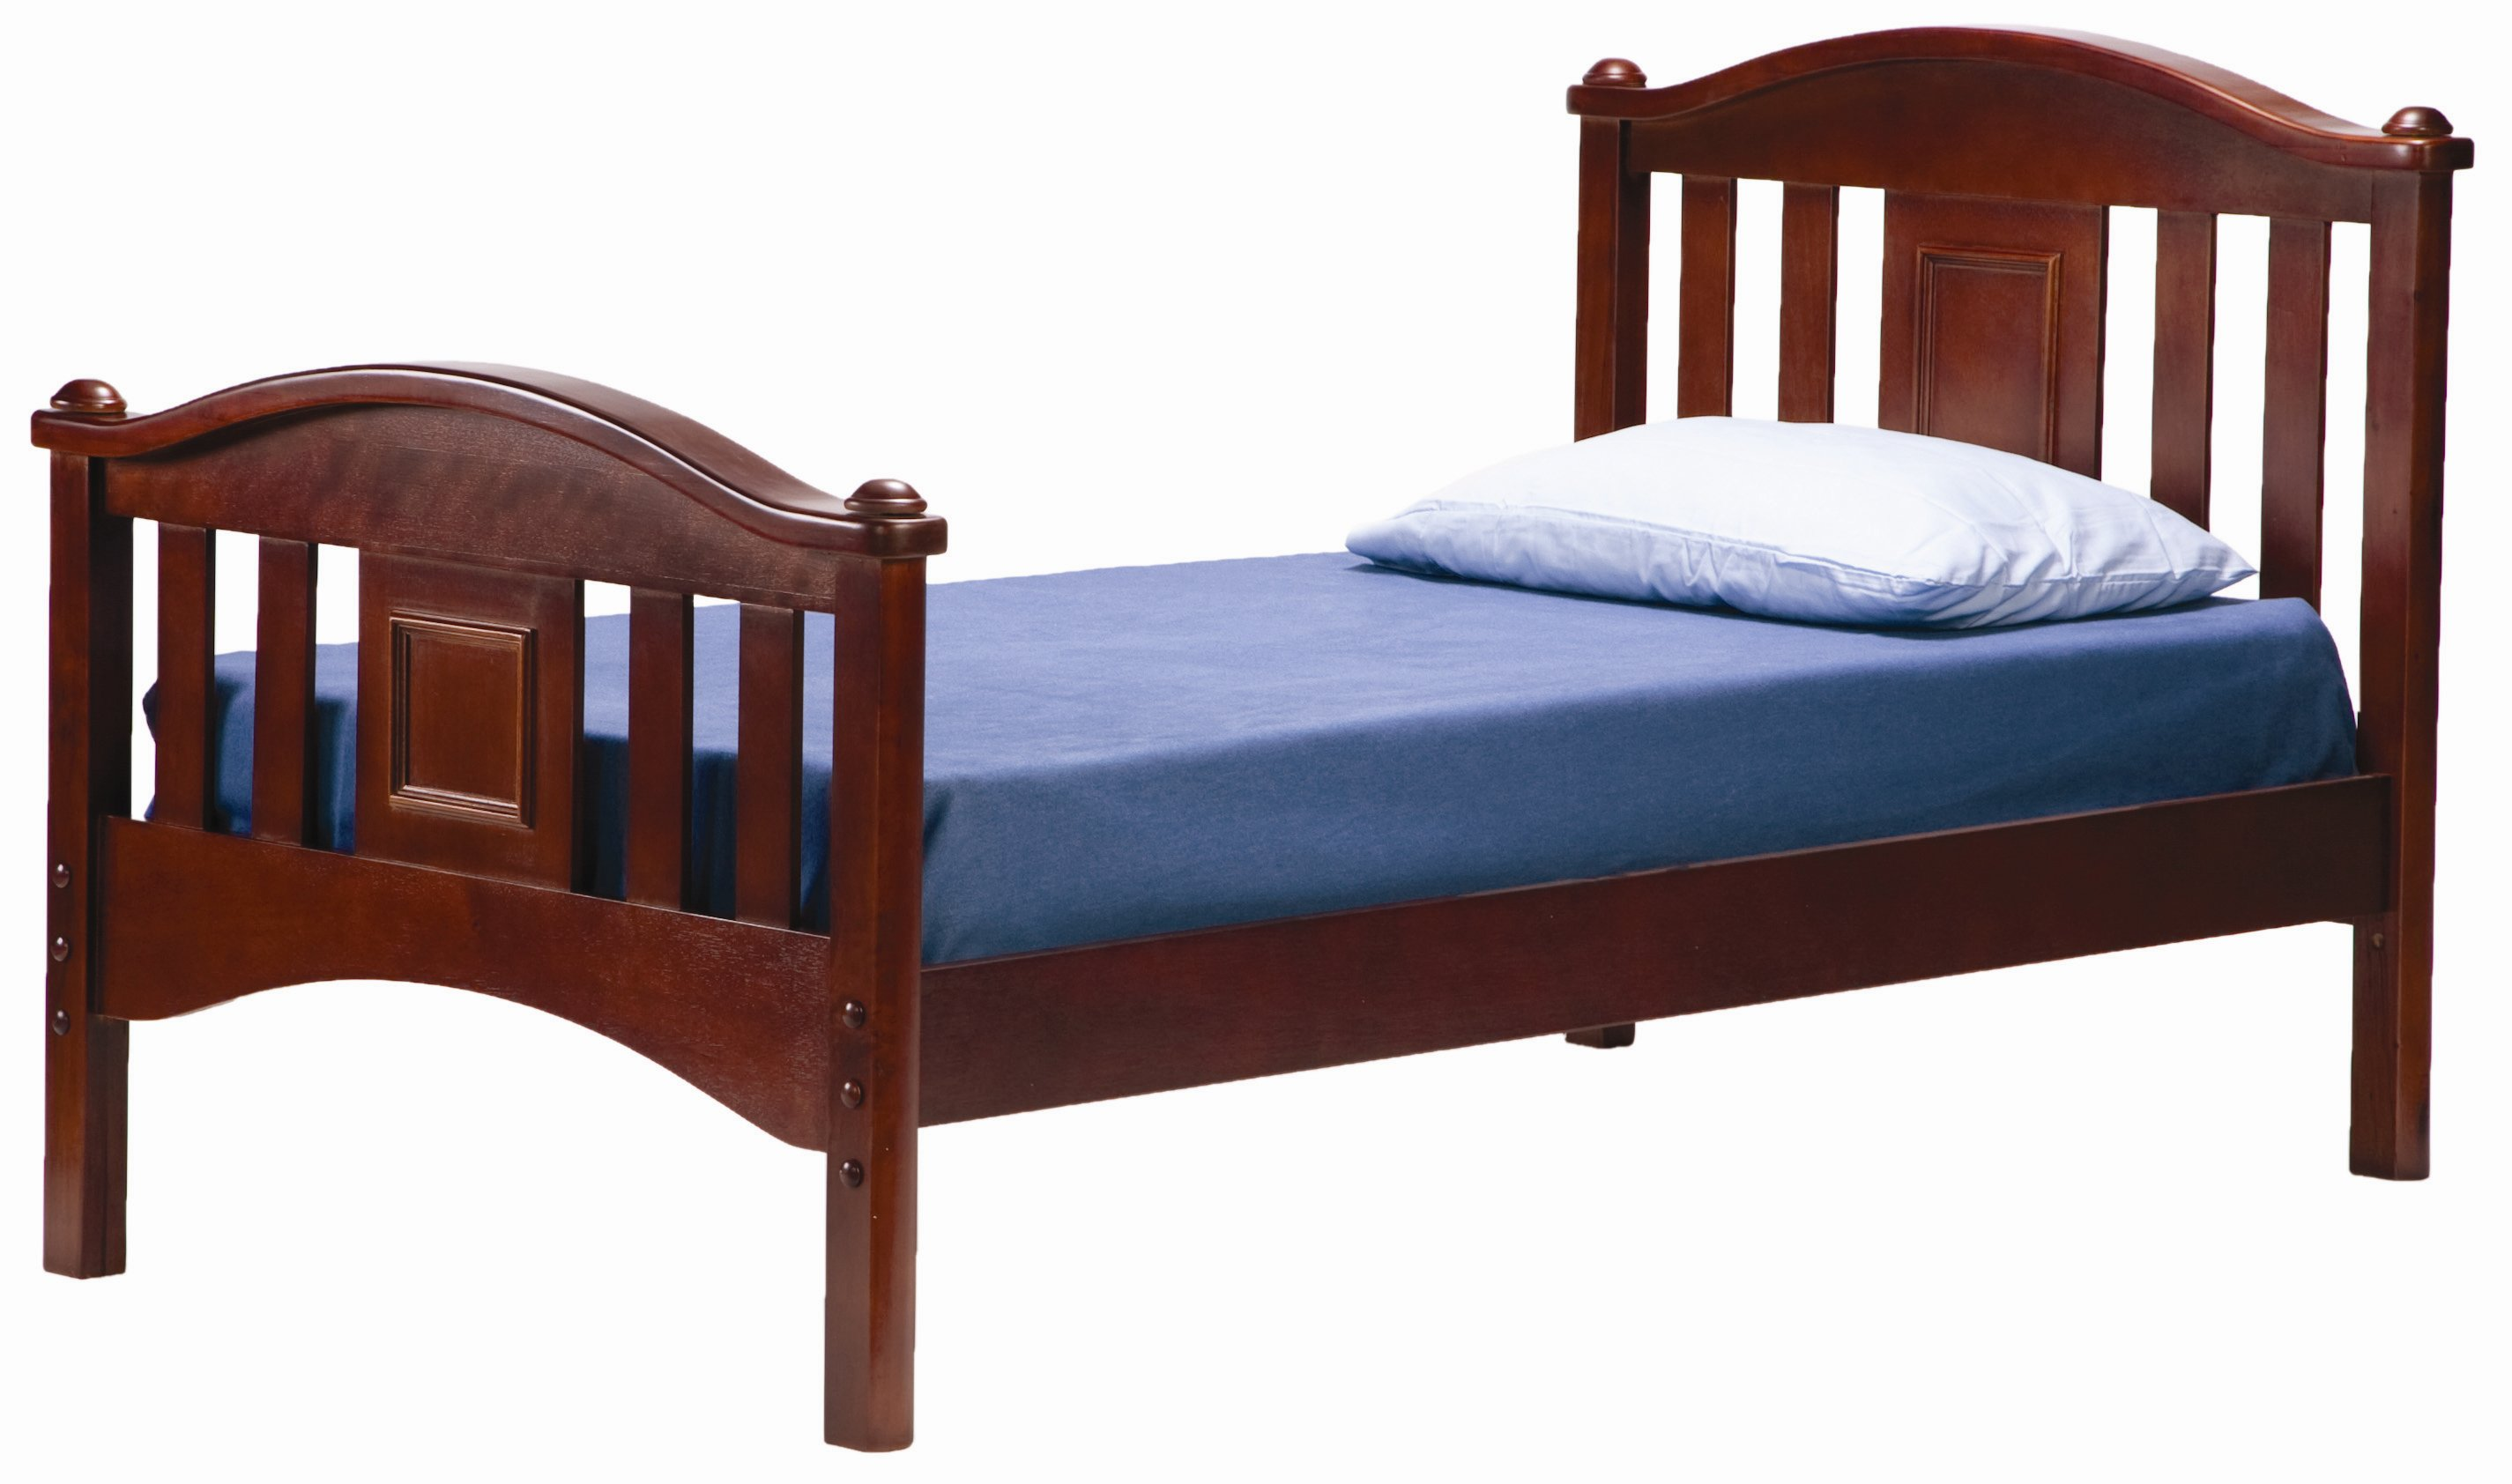 Bolton Furniture Lyndon Kids Bed Best Price